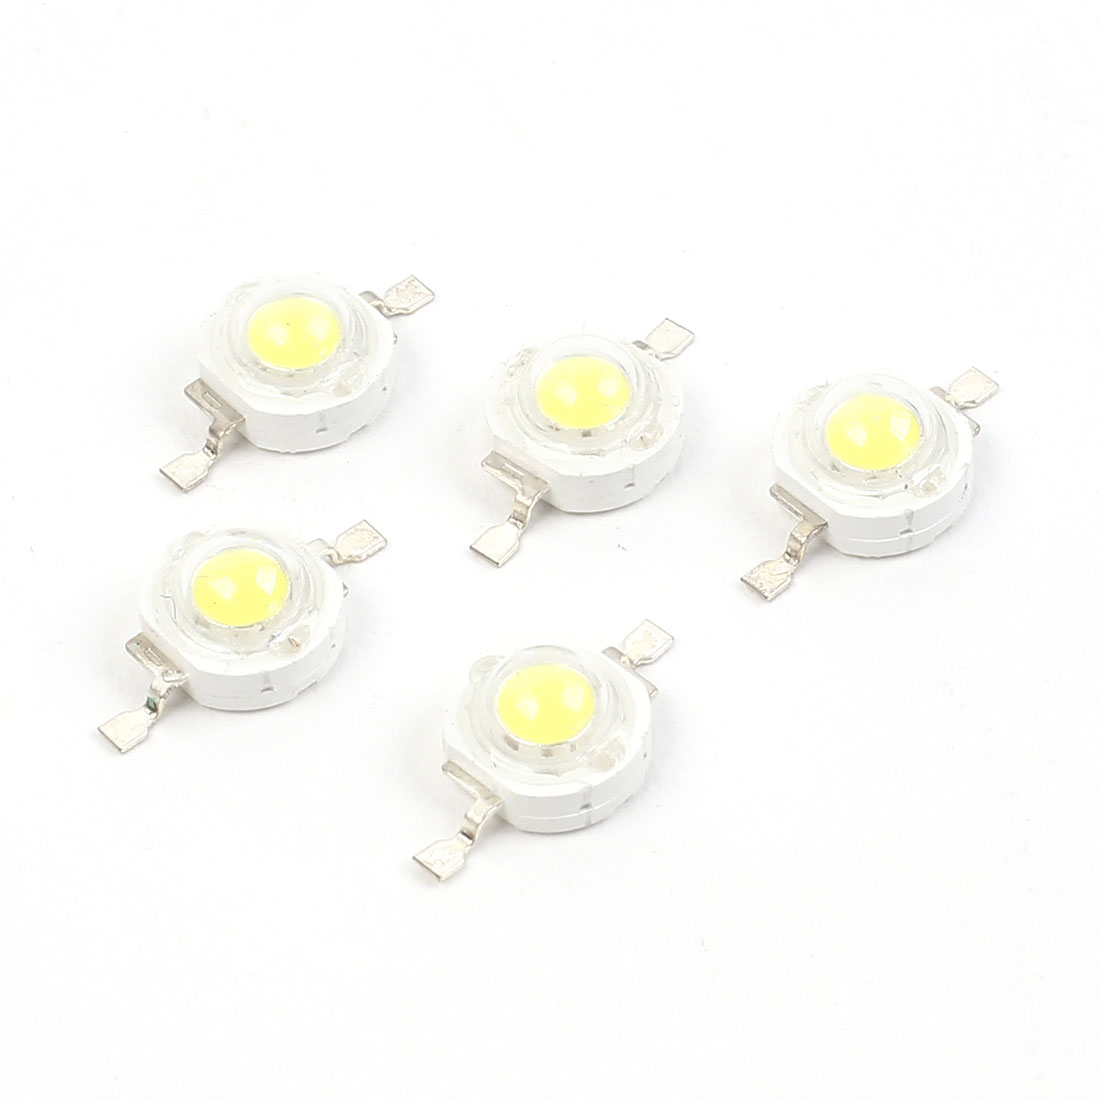 5 Pcs White Light Emitting Diode Chip LED 1W 100LM